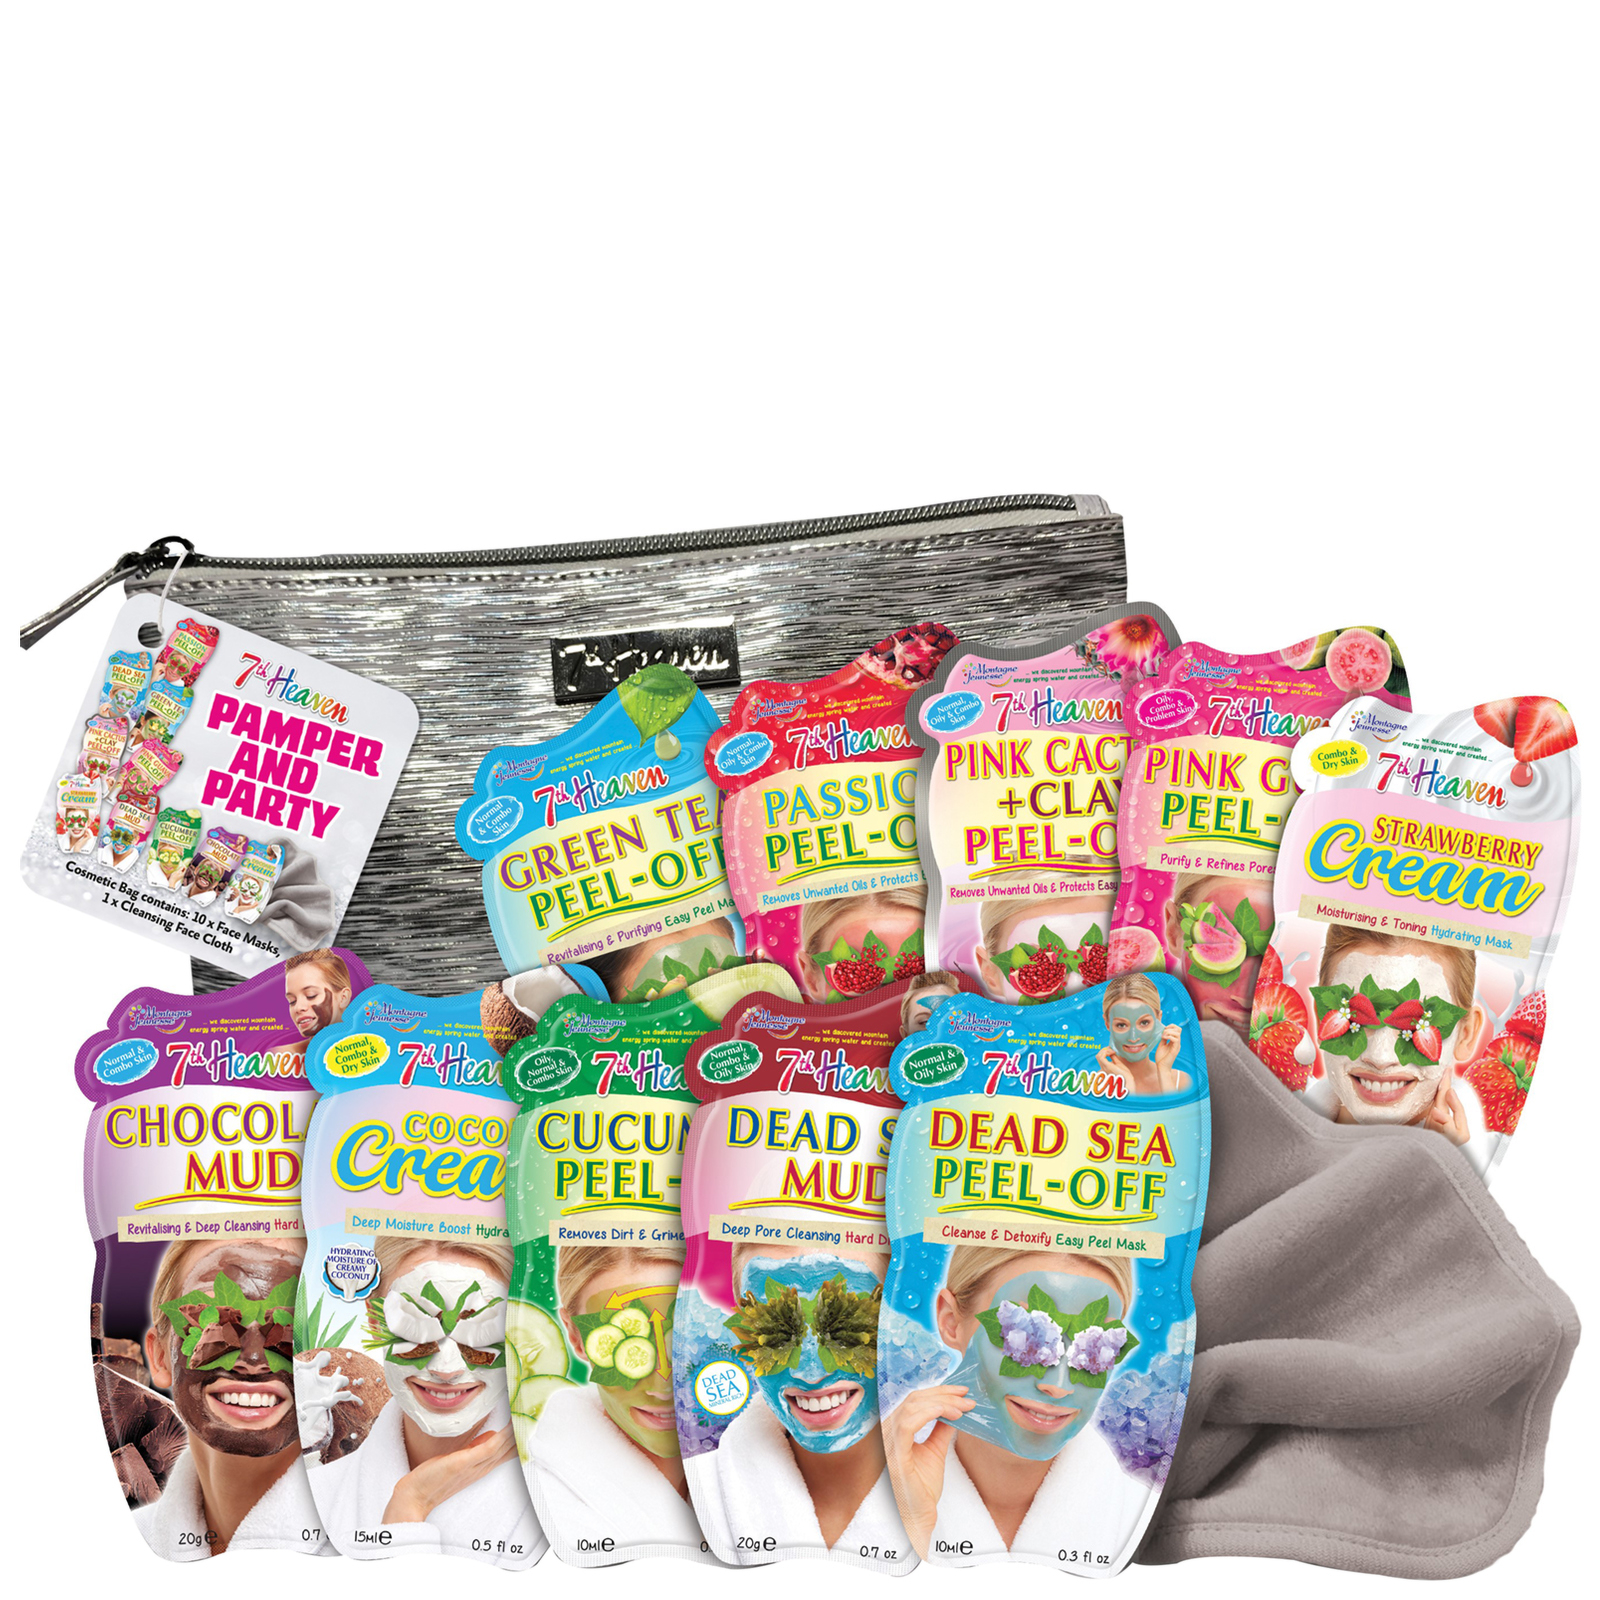 7th Heaven Gift Sets Pamper & Party Gift Set